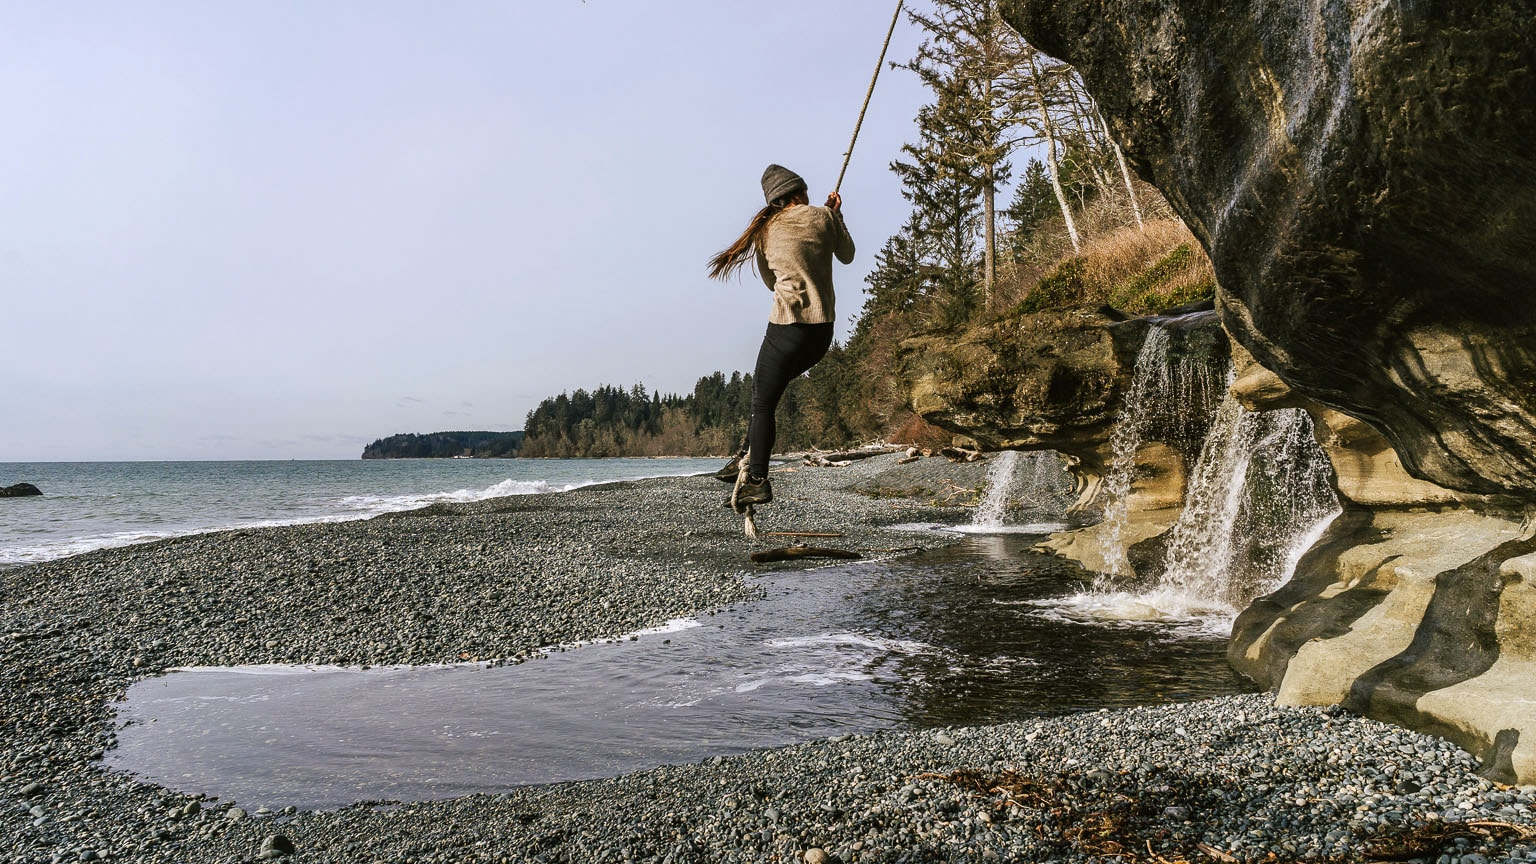 The author swings on a rope at Sandcut Beach.